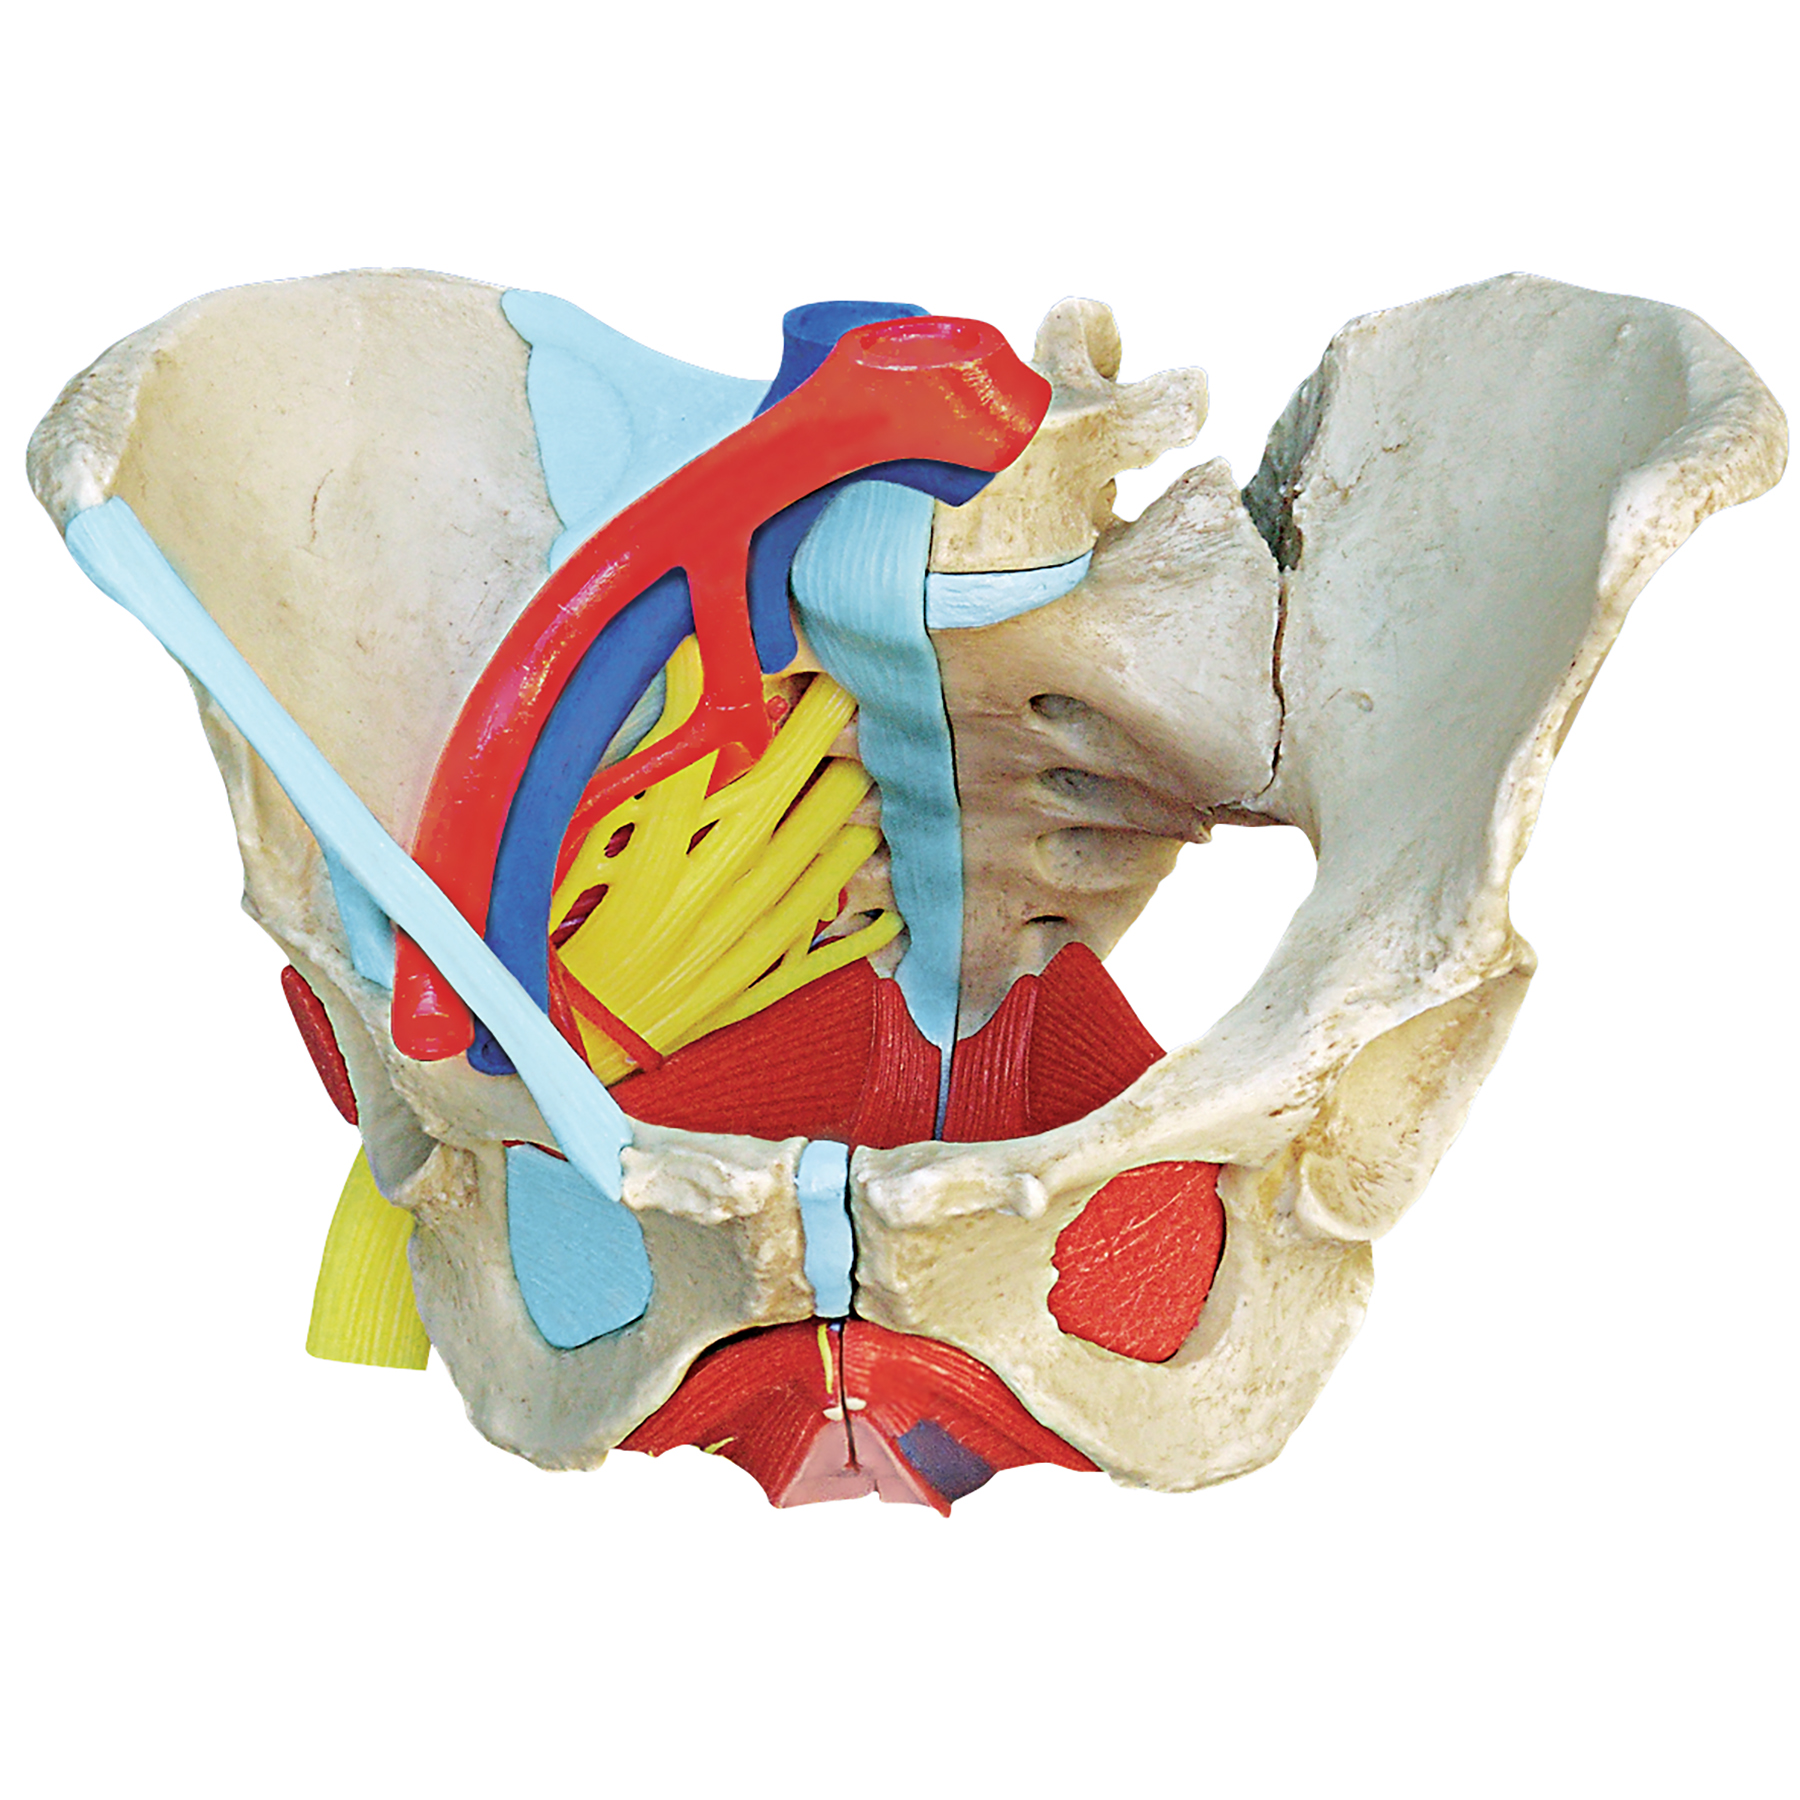 Female Pelvis with Ligaments, Nerves, Pelvic Floor, and Organs Model